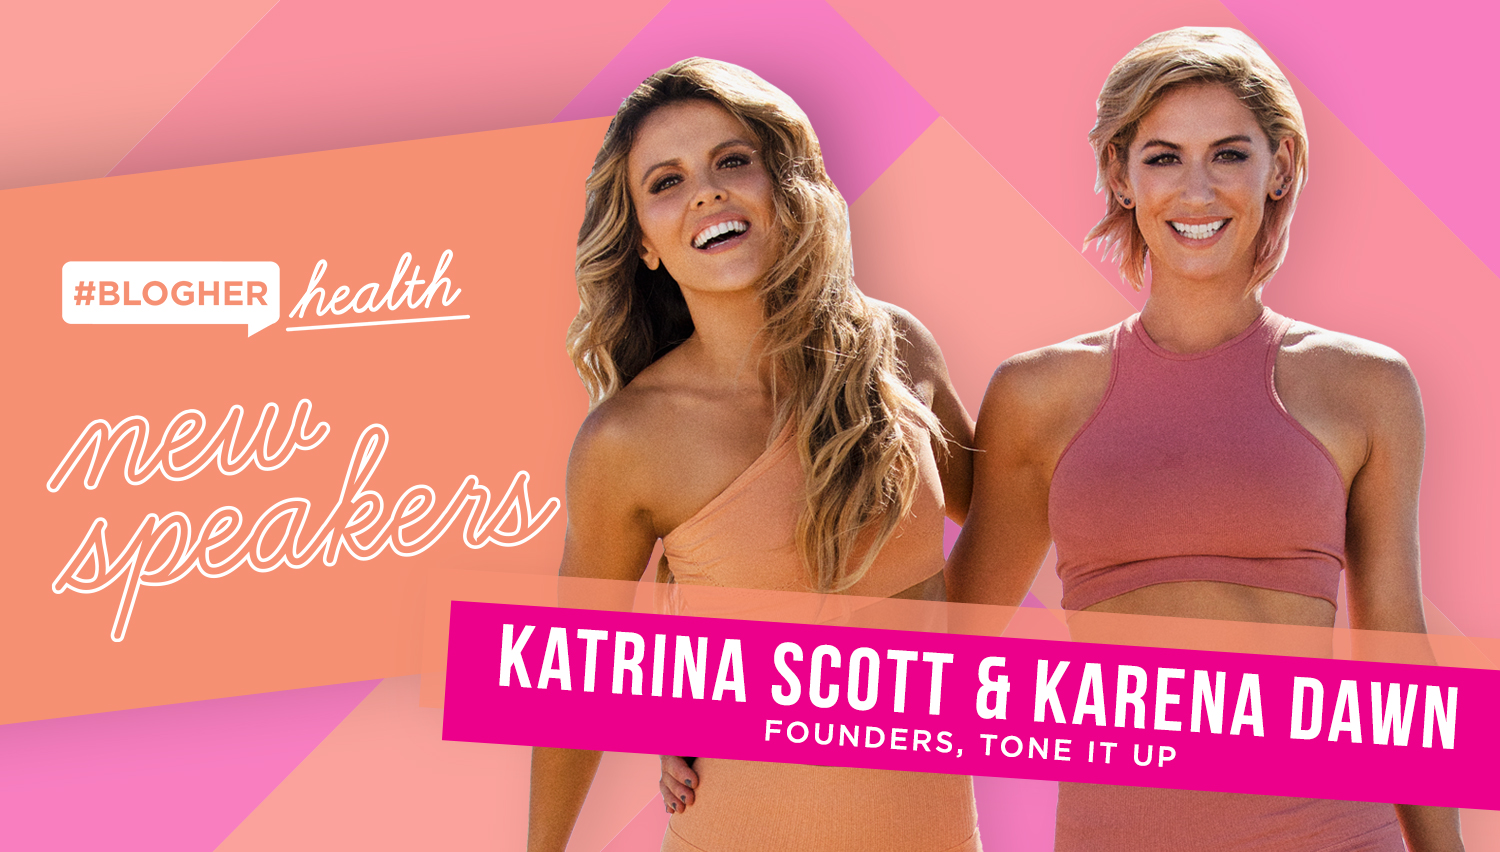 welcome katrina and karena - #WinningWomen Katrina and Karena will join us on the main stage for a conversation on fitness, building community, and how they created an impactful brand.